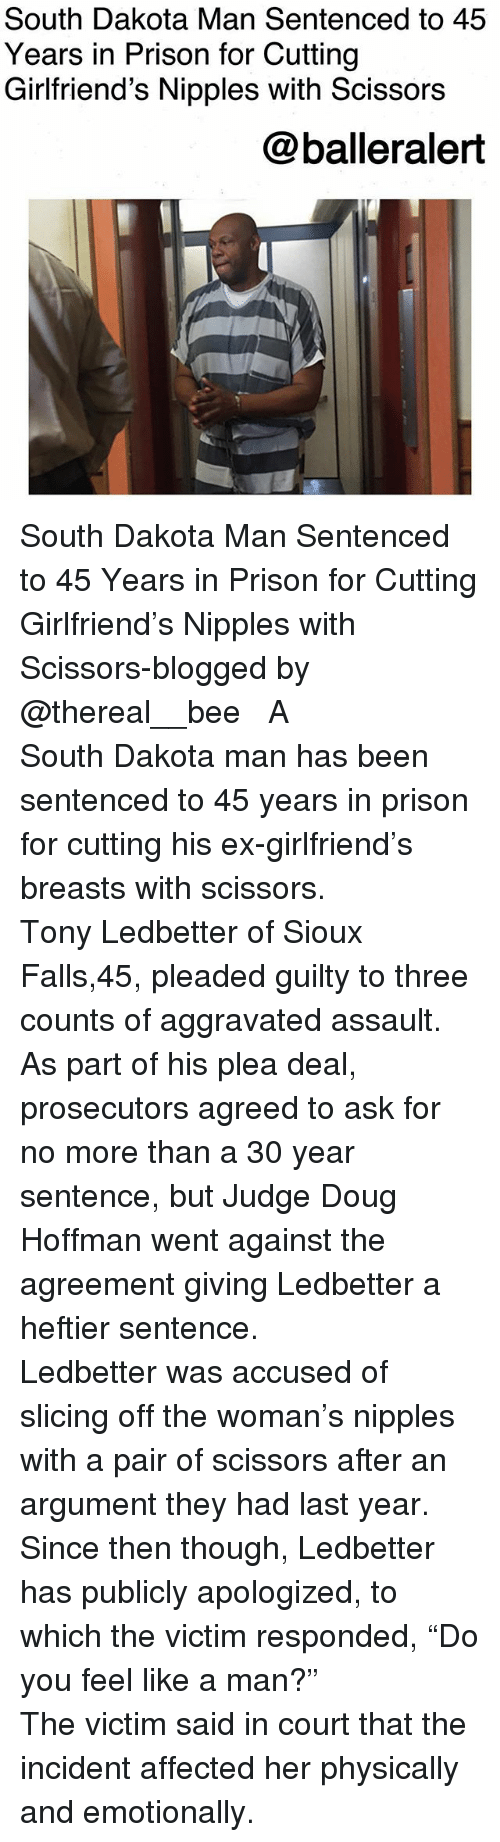 """Doug, Memes, and Prison: South Dakota Man Sentenced to 45  Years in Prison for Cutting  Girlfriend's Nipples with Scissors  @balleralert South Dakota Man Sentenced to 45 Years in Prison for Cutting Girlfriend's Nipples with Scissors-blogged by @thereal__bee ⠀⠀⠀⠀⠀⠀⠀⠀⠀ ⠀⠀ A South Dakota man has been sentenced to 45 years in prison for cutting his ex-girlfriend's breasts with scissors. ⠀⠀⠀⠀⠀⠀⠀⠀⠀ ⠀⠀ Tony Ledbetter of Sioux Falls,45, pleaded guilty to three counts of aggravated assault. As part of his plea deal, prosecutors agreed to ask for no more than a 30 year sentence, but Judge Doug Hoffman went against the agreement giving Ledbetter a heftier sentence. ⠀⠀⠀⠀⠀⠀⠀⠀⠀ ⠀⠀ Ledbetter was accused of slicing off the woman's nipples with a pair of scissors after an argument they had last year. Since then though, Ledbetter has publicly apologized, to which the victim responded, """"Do you feel like a man?"""" ⠀⠀⠀⠀⠀⠀⠀⠀⠀ ⠀⠀ The victim said in court that the incident affected her physically and emotionally."""